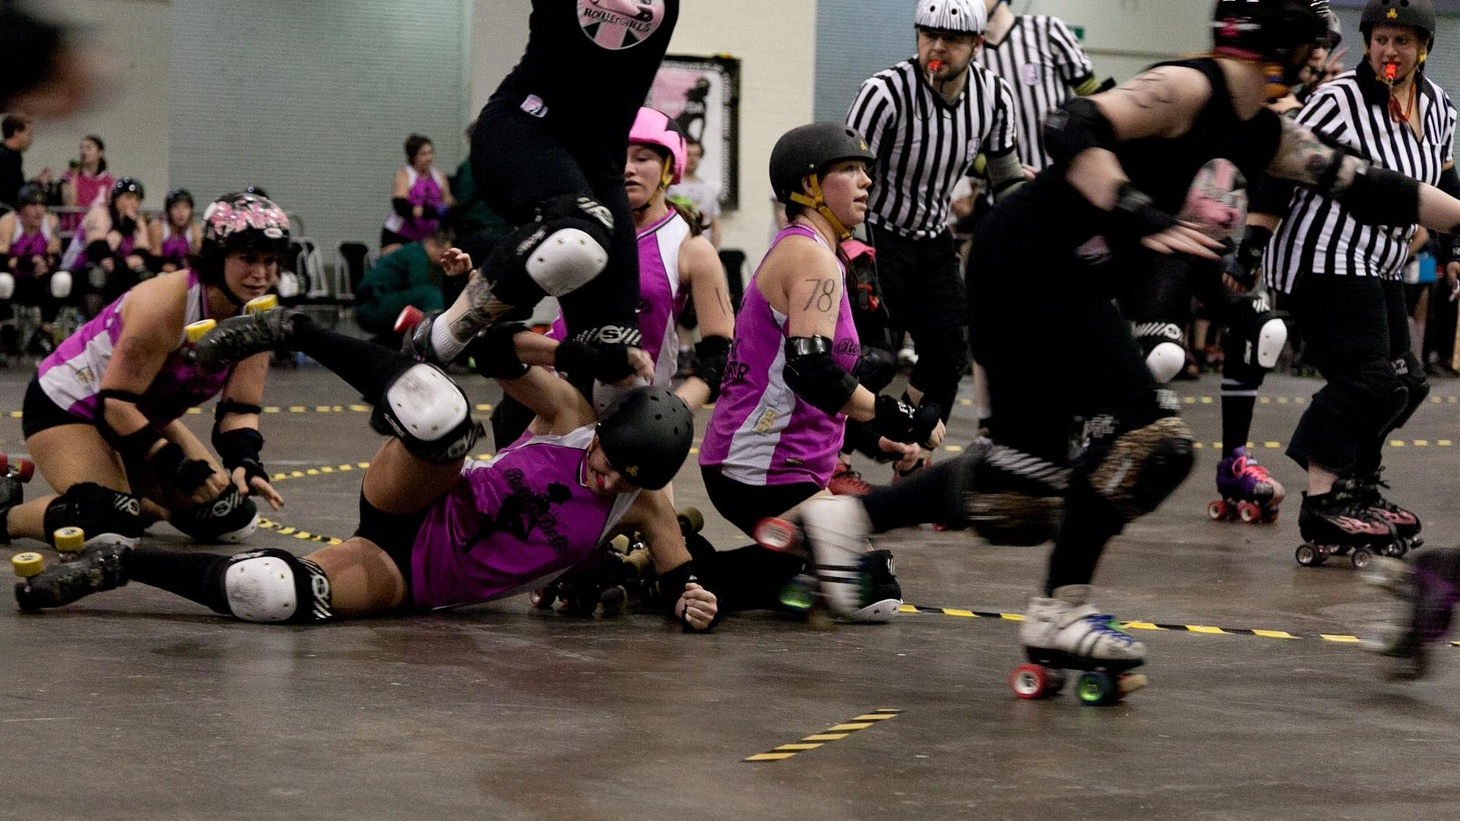 Rocking and rolling and slamming and jamming with the ladies of the London Roller Girls.